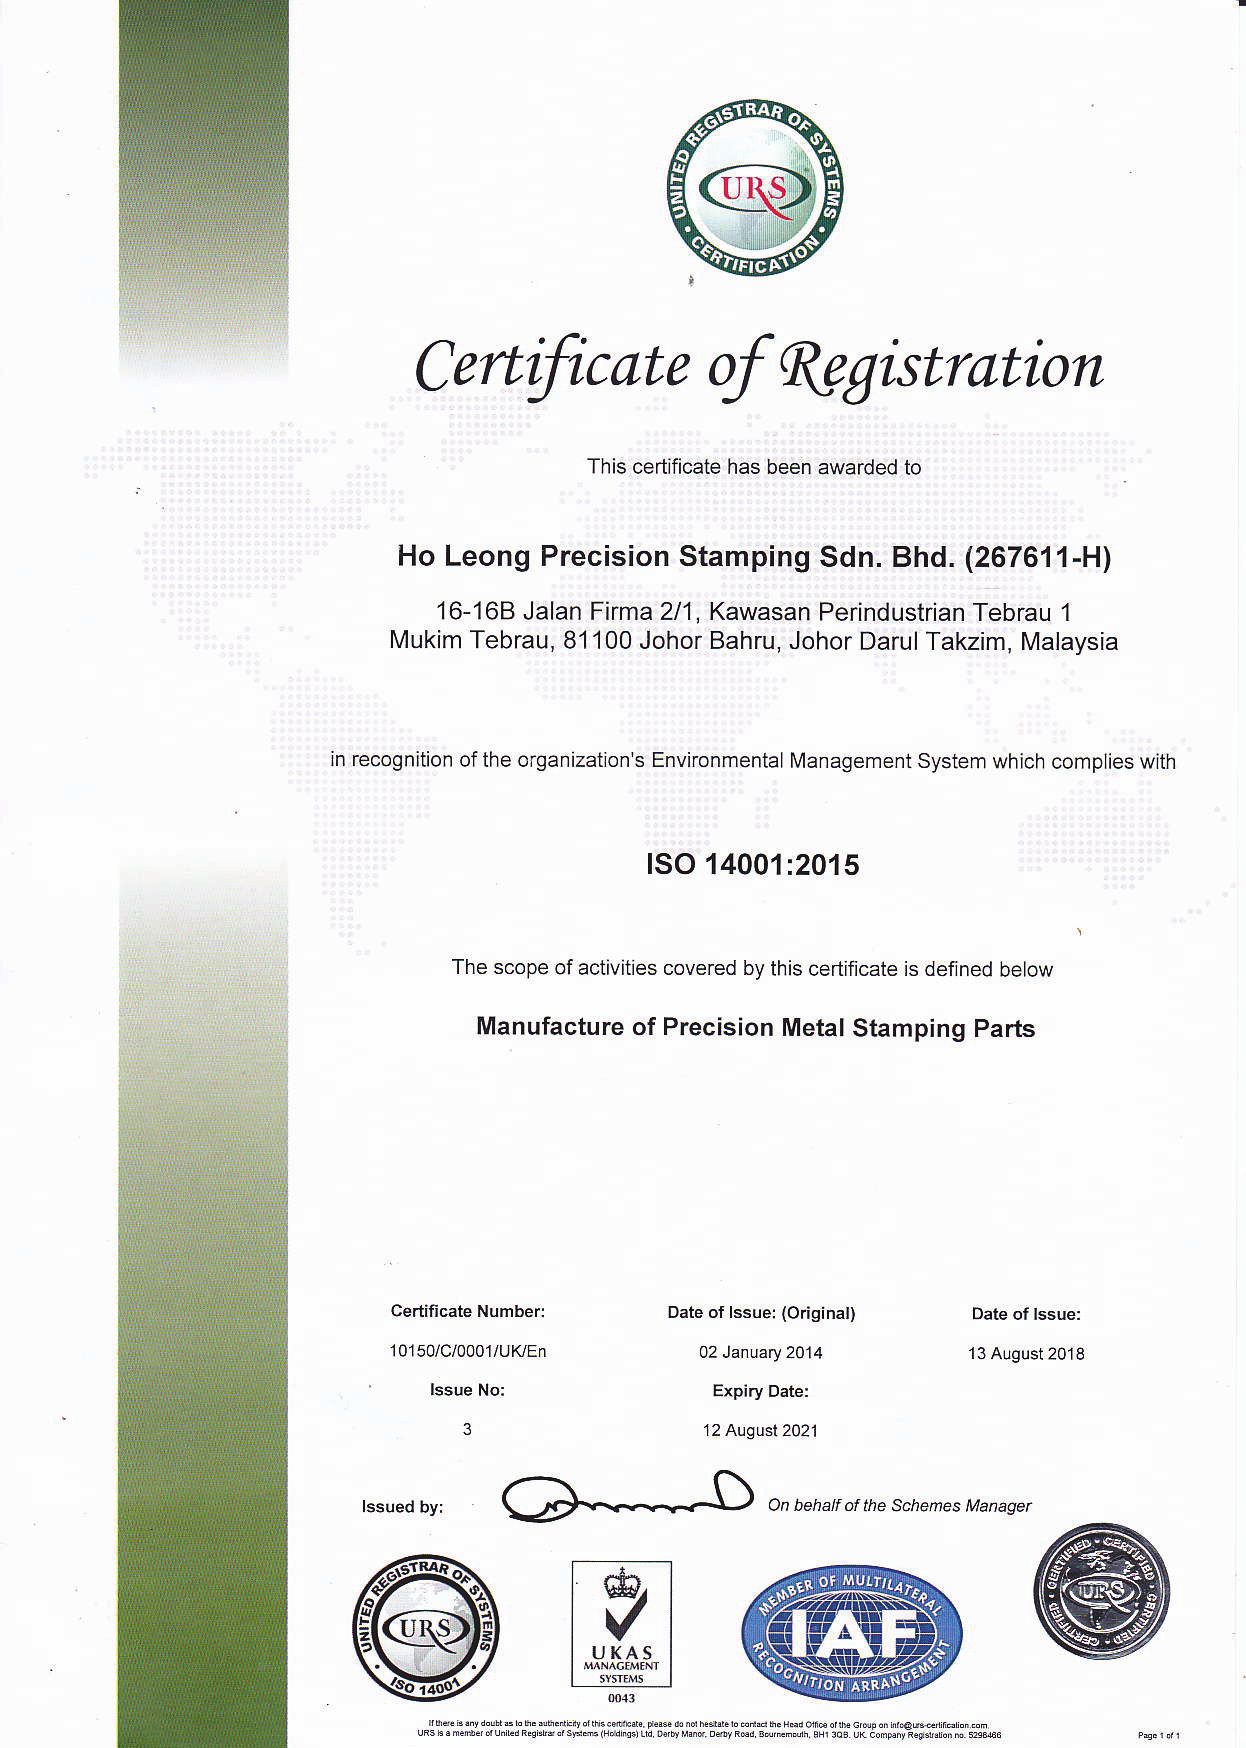 Certificate of Registration – ISO 14001:2015